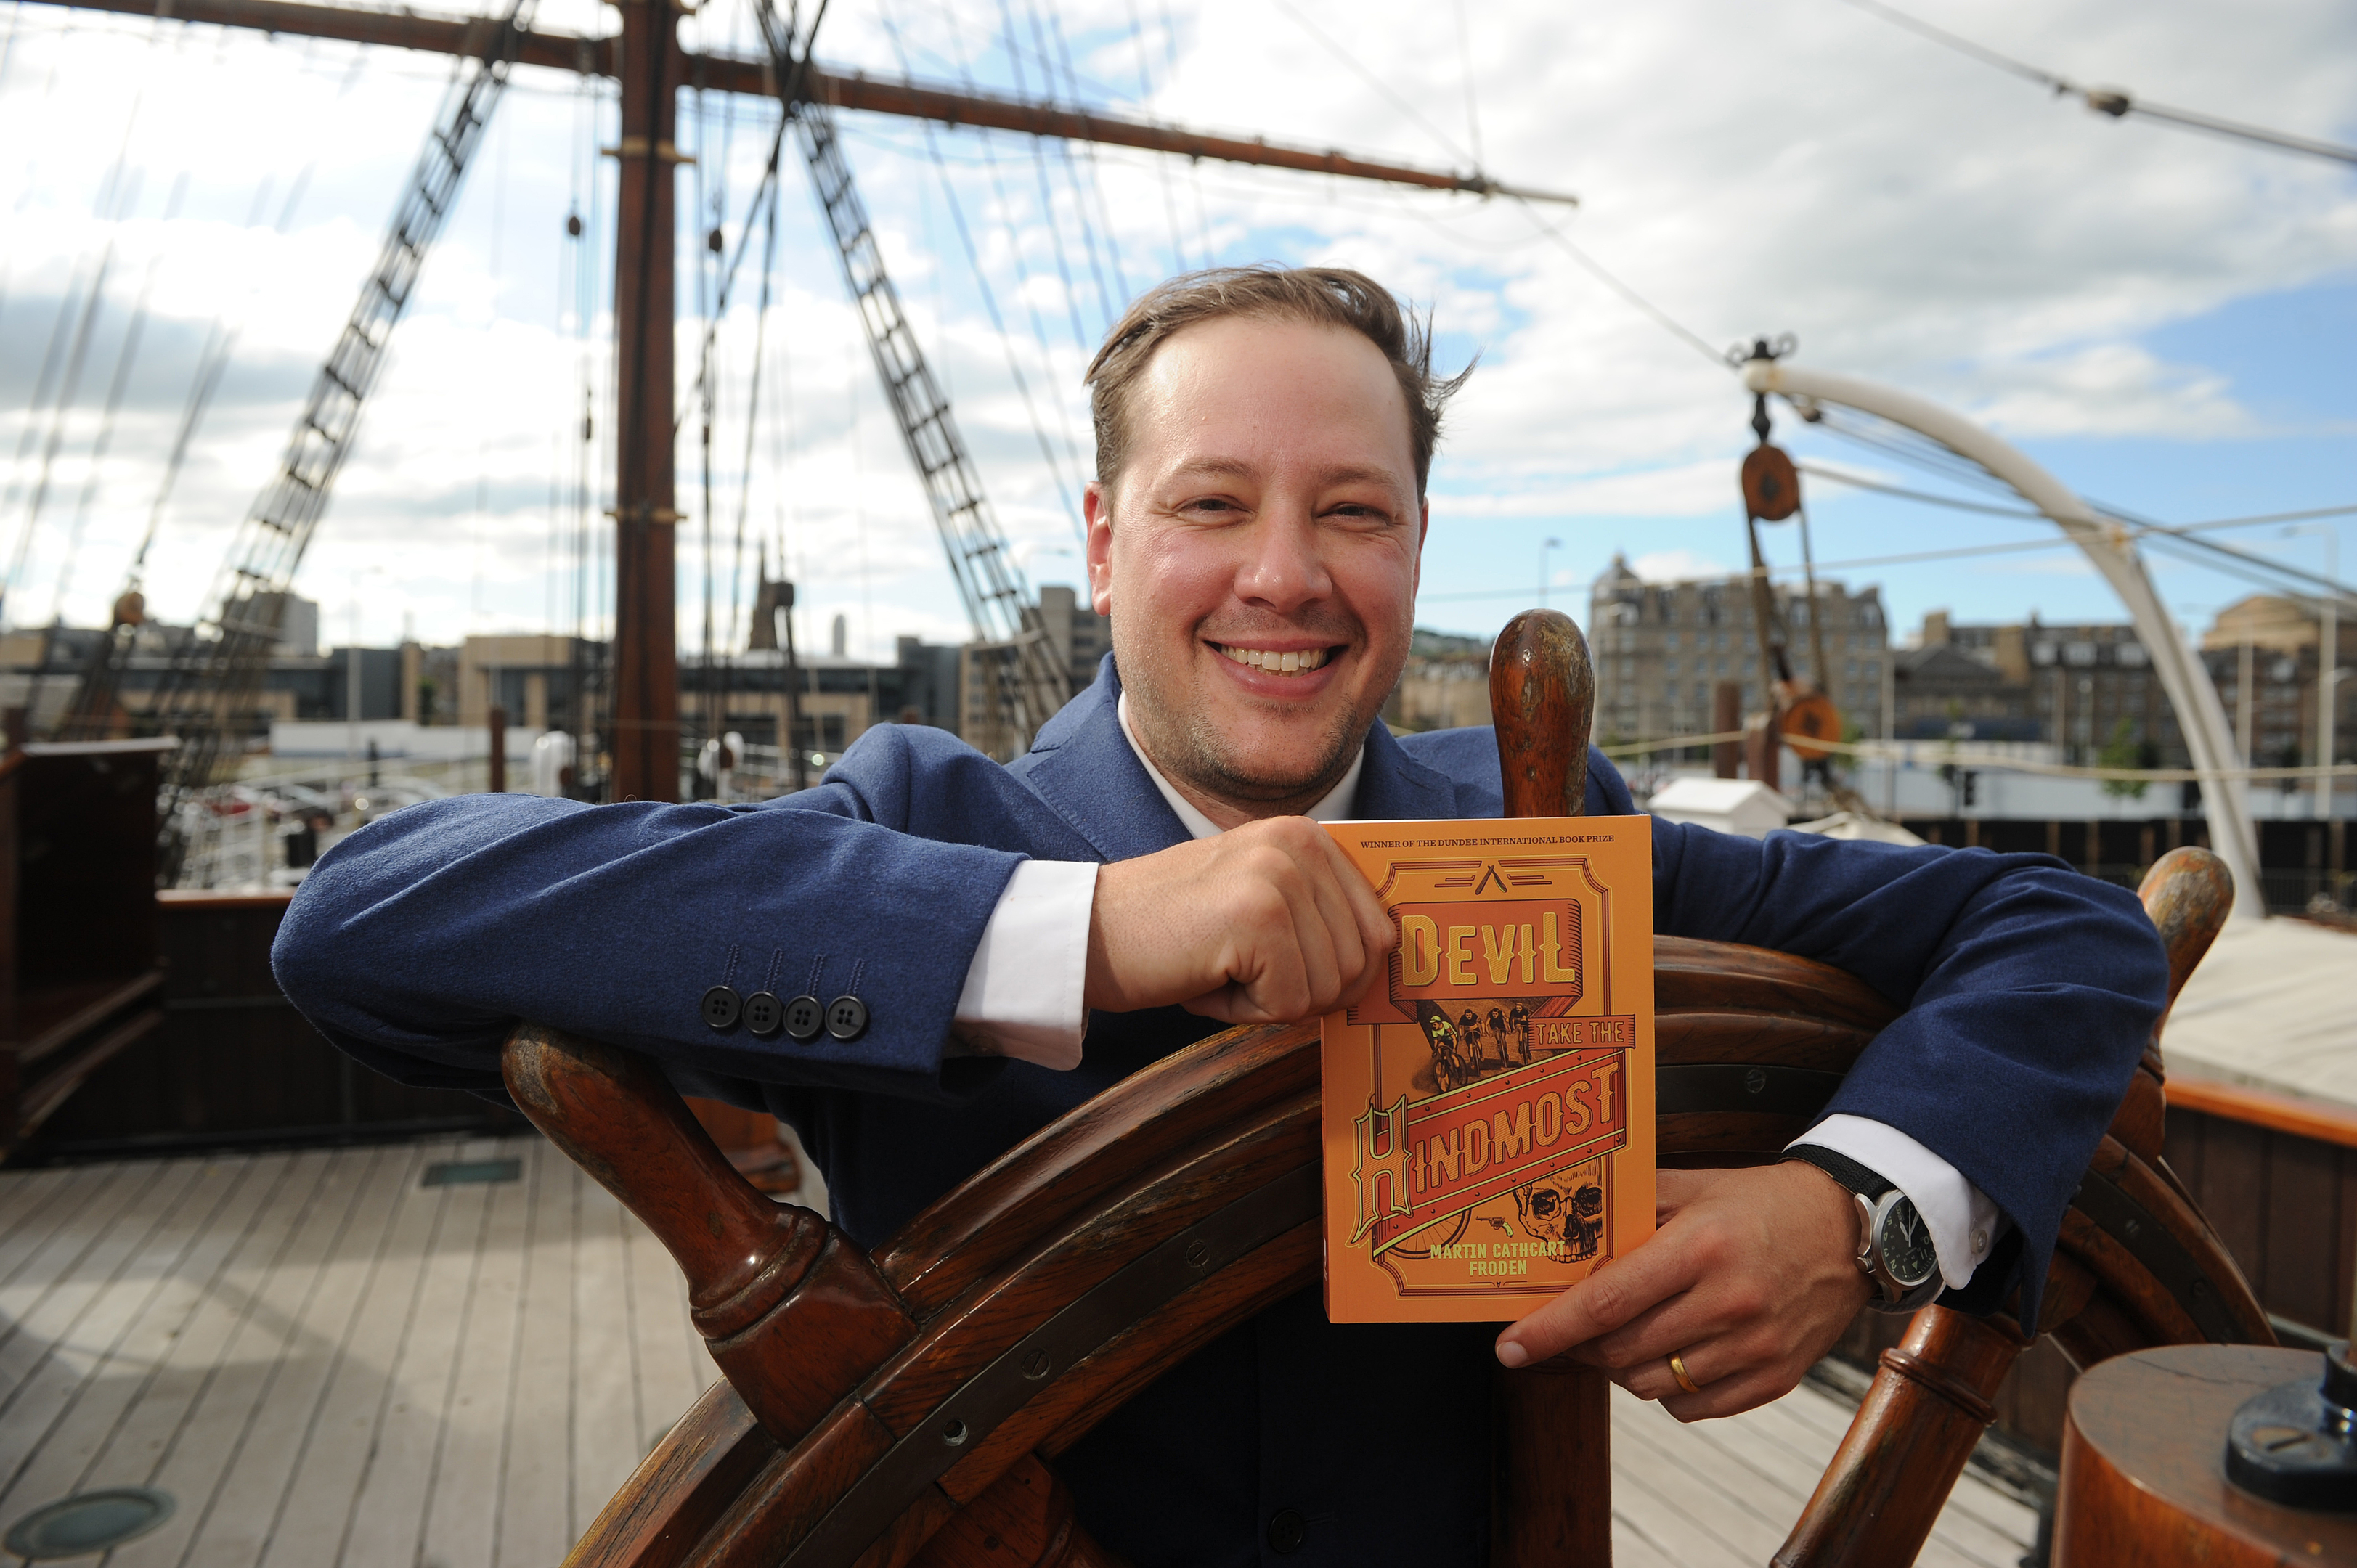 Last year's winner of the Dundee International Book Prize, Martin Cathcart Froden, launched his prizewinning publication 'Devil Take the Hindmost' on the RSS Discovery.